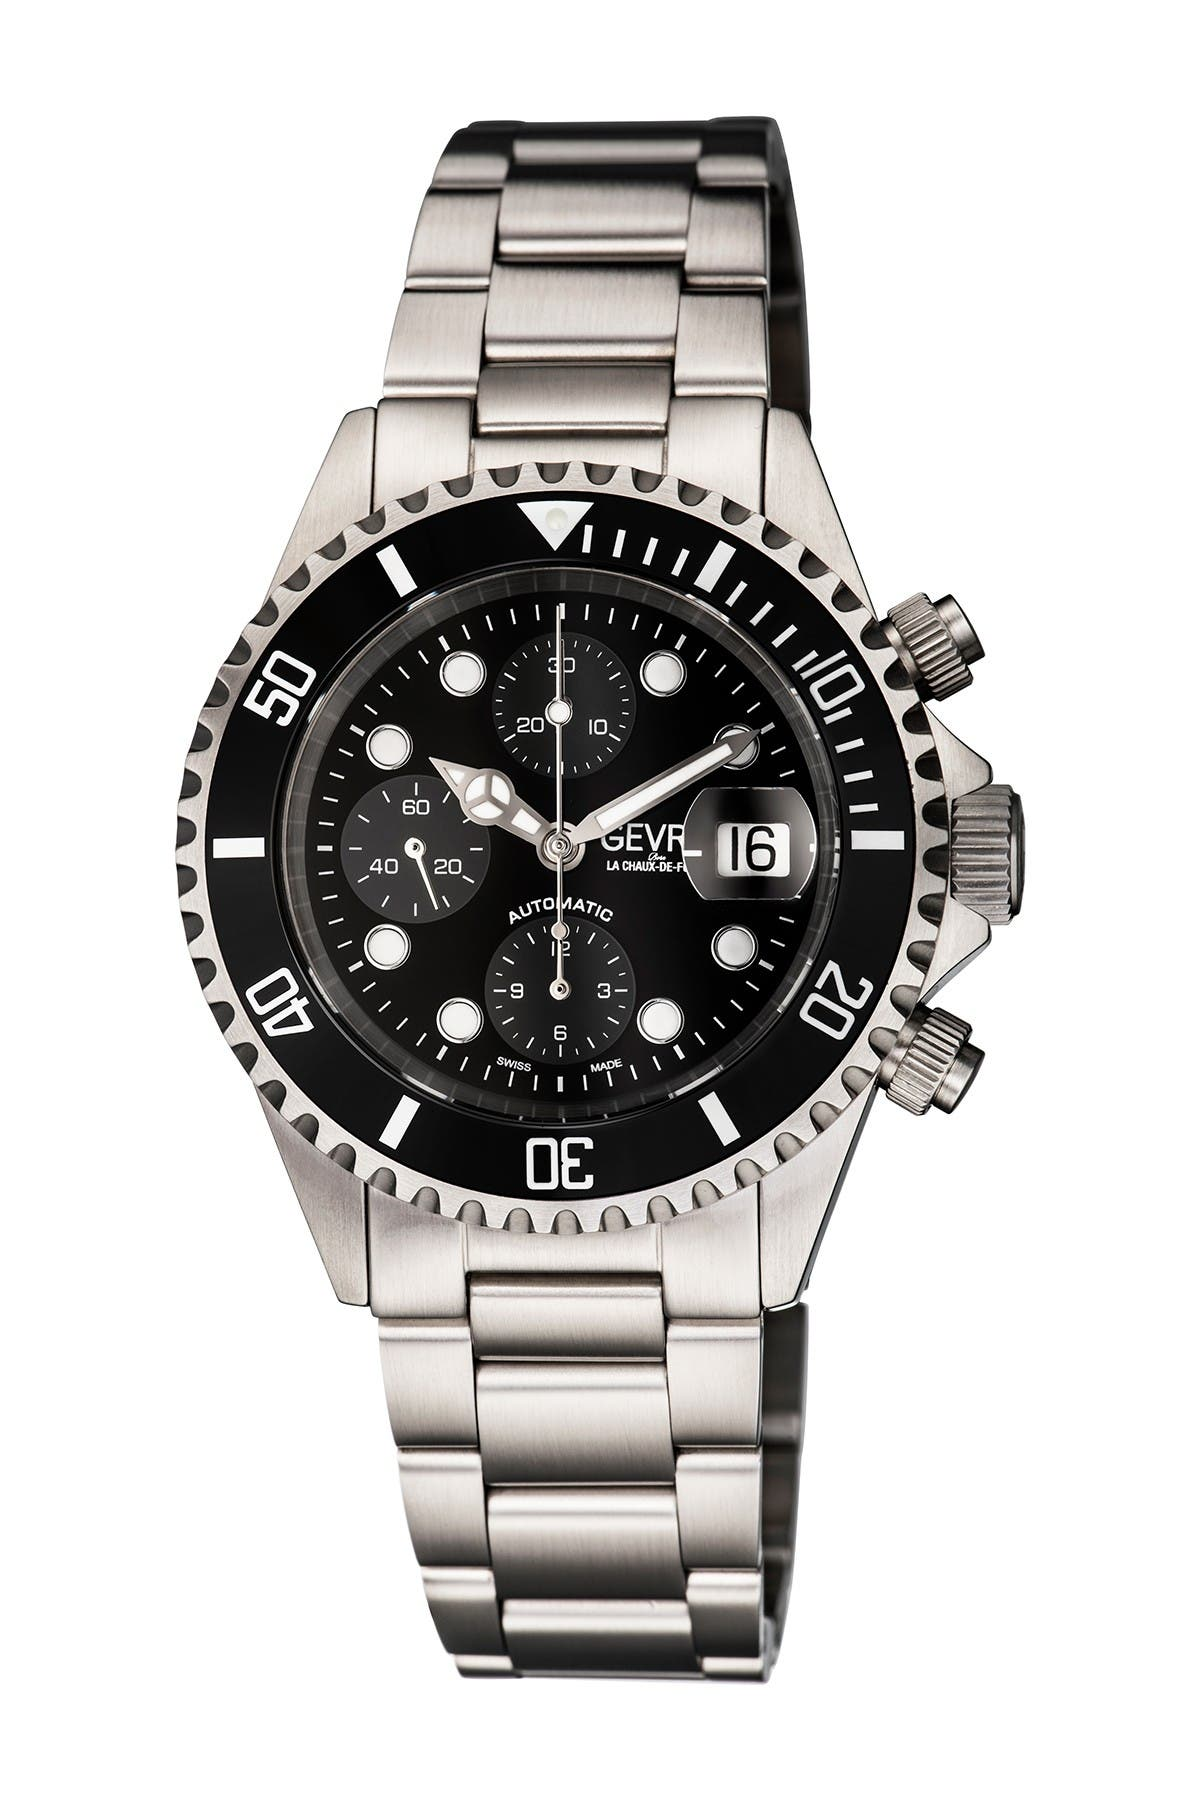 Image of Gevril Men's Wall Street Swiss Automatic Watch, 43mm